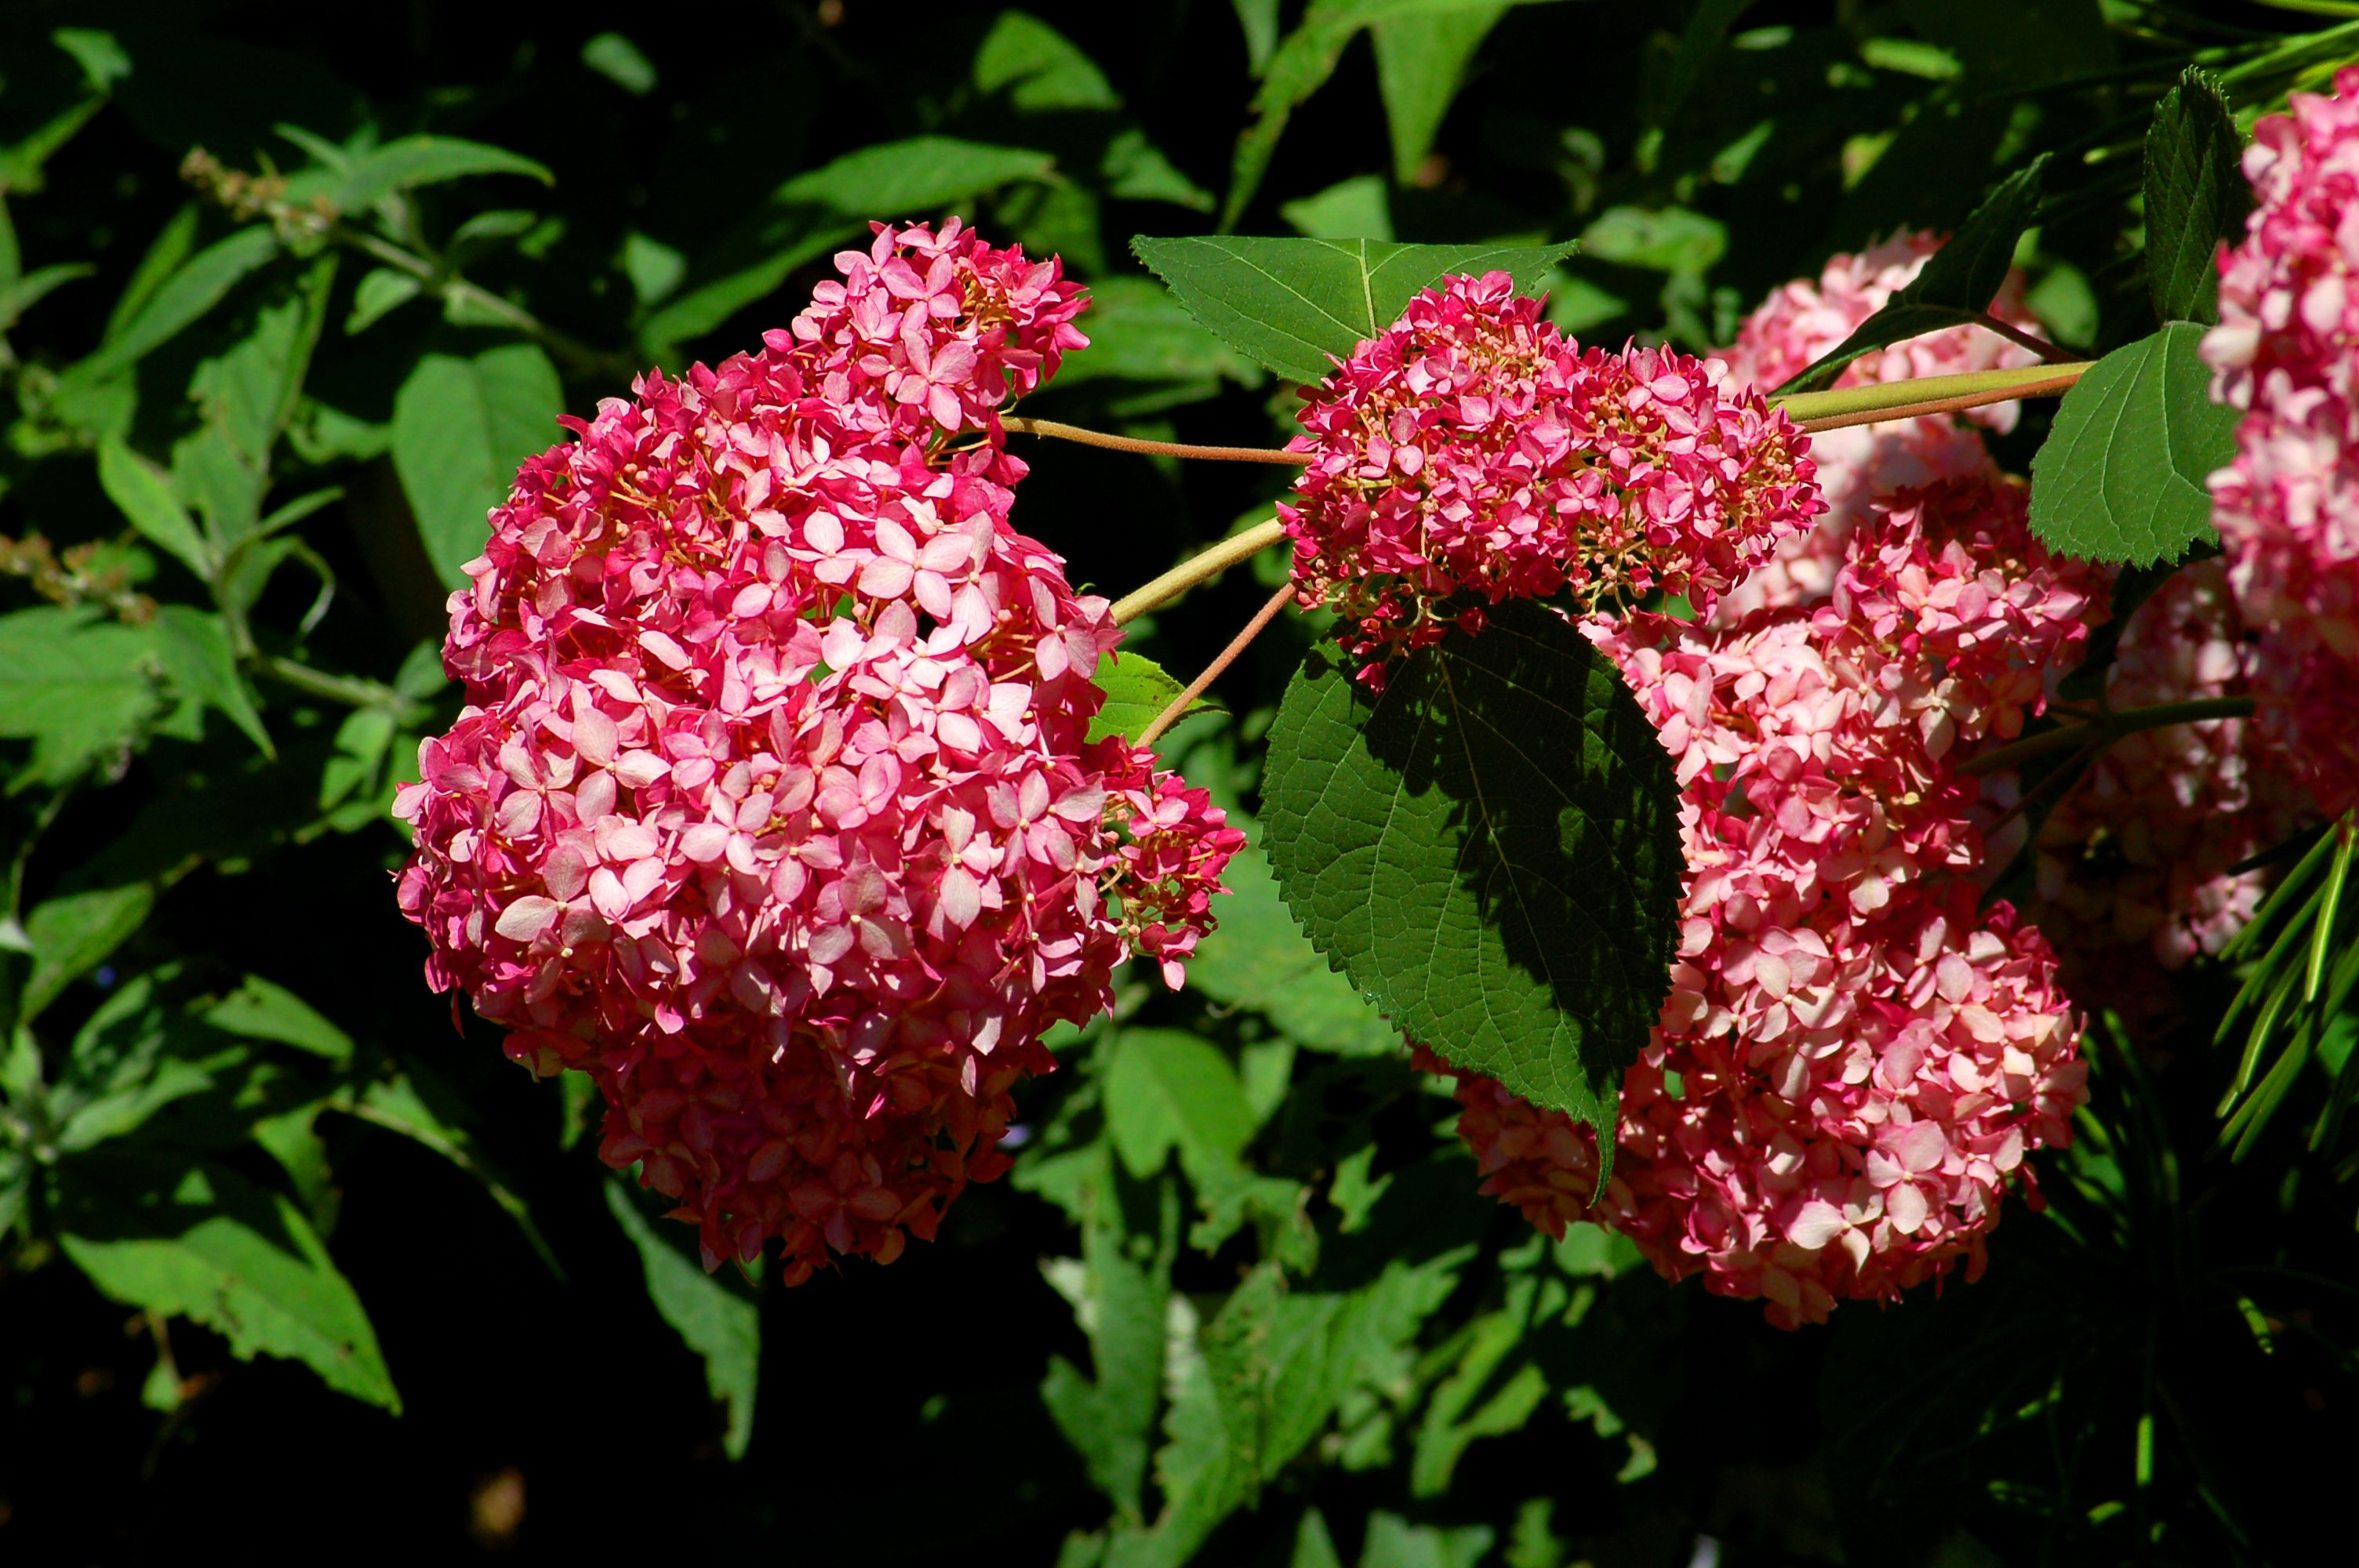 Invincibelle Spirit hydrangea starts out almost red, then fades to a light pink. Here's a picture.